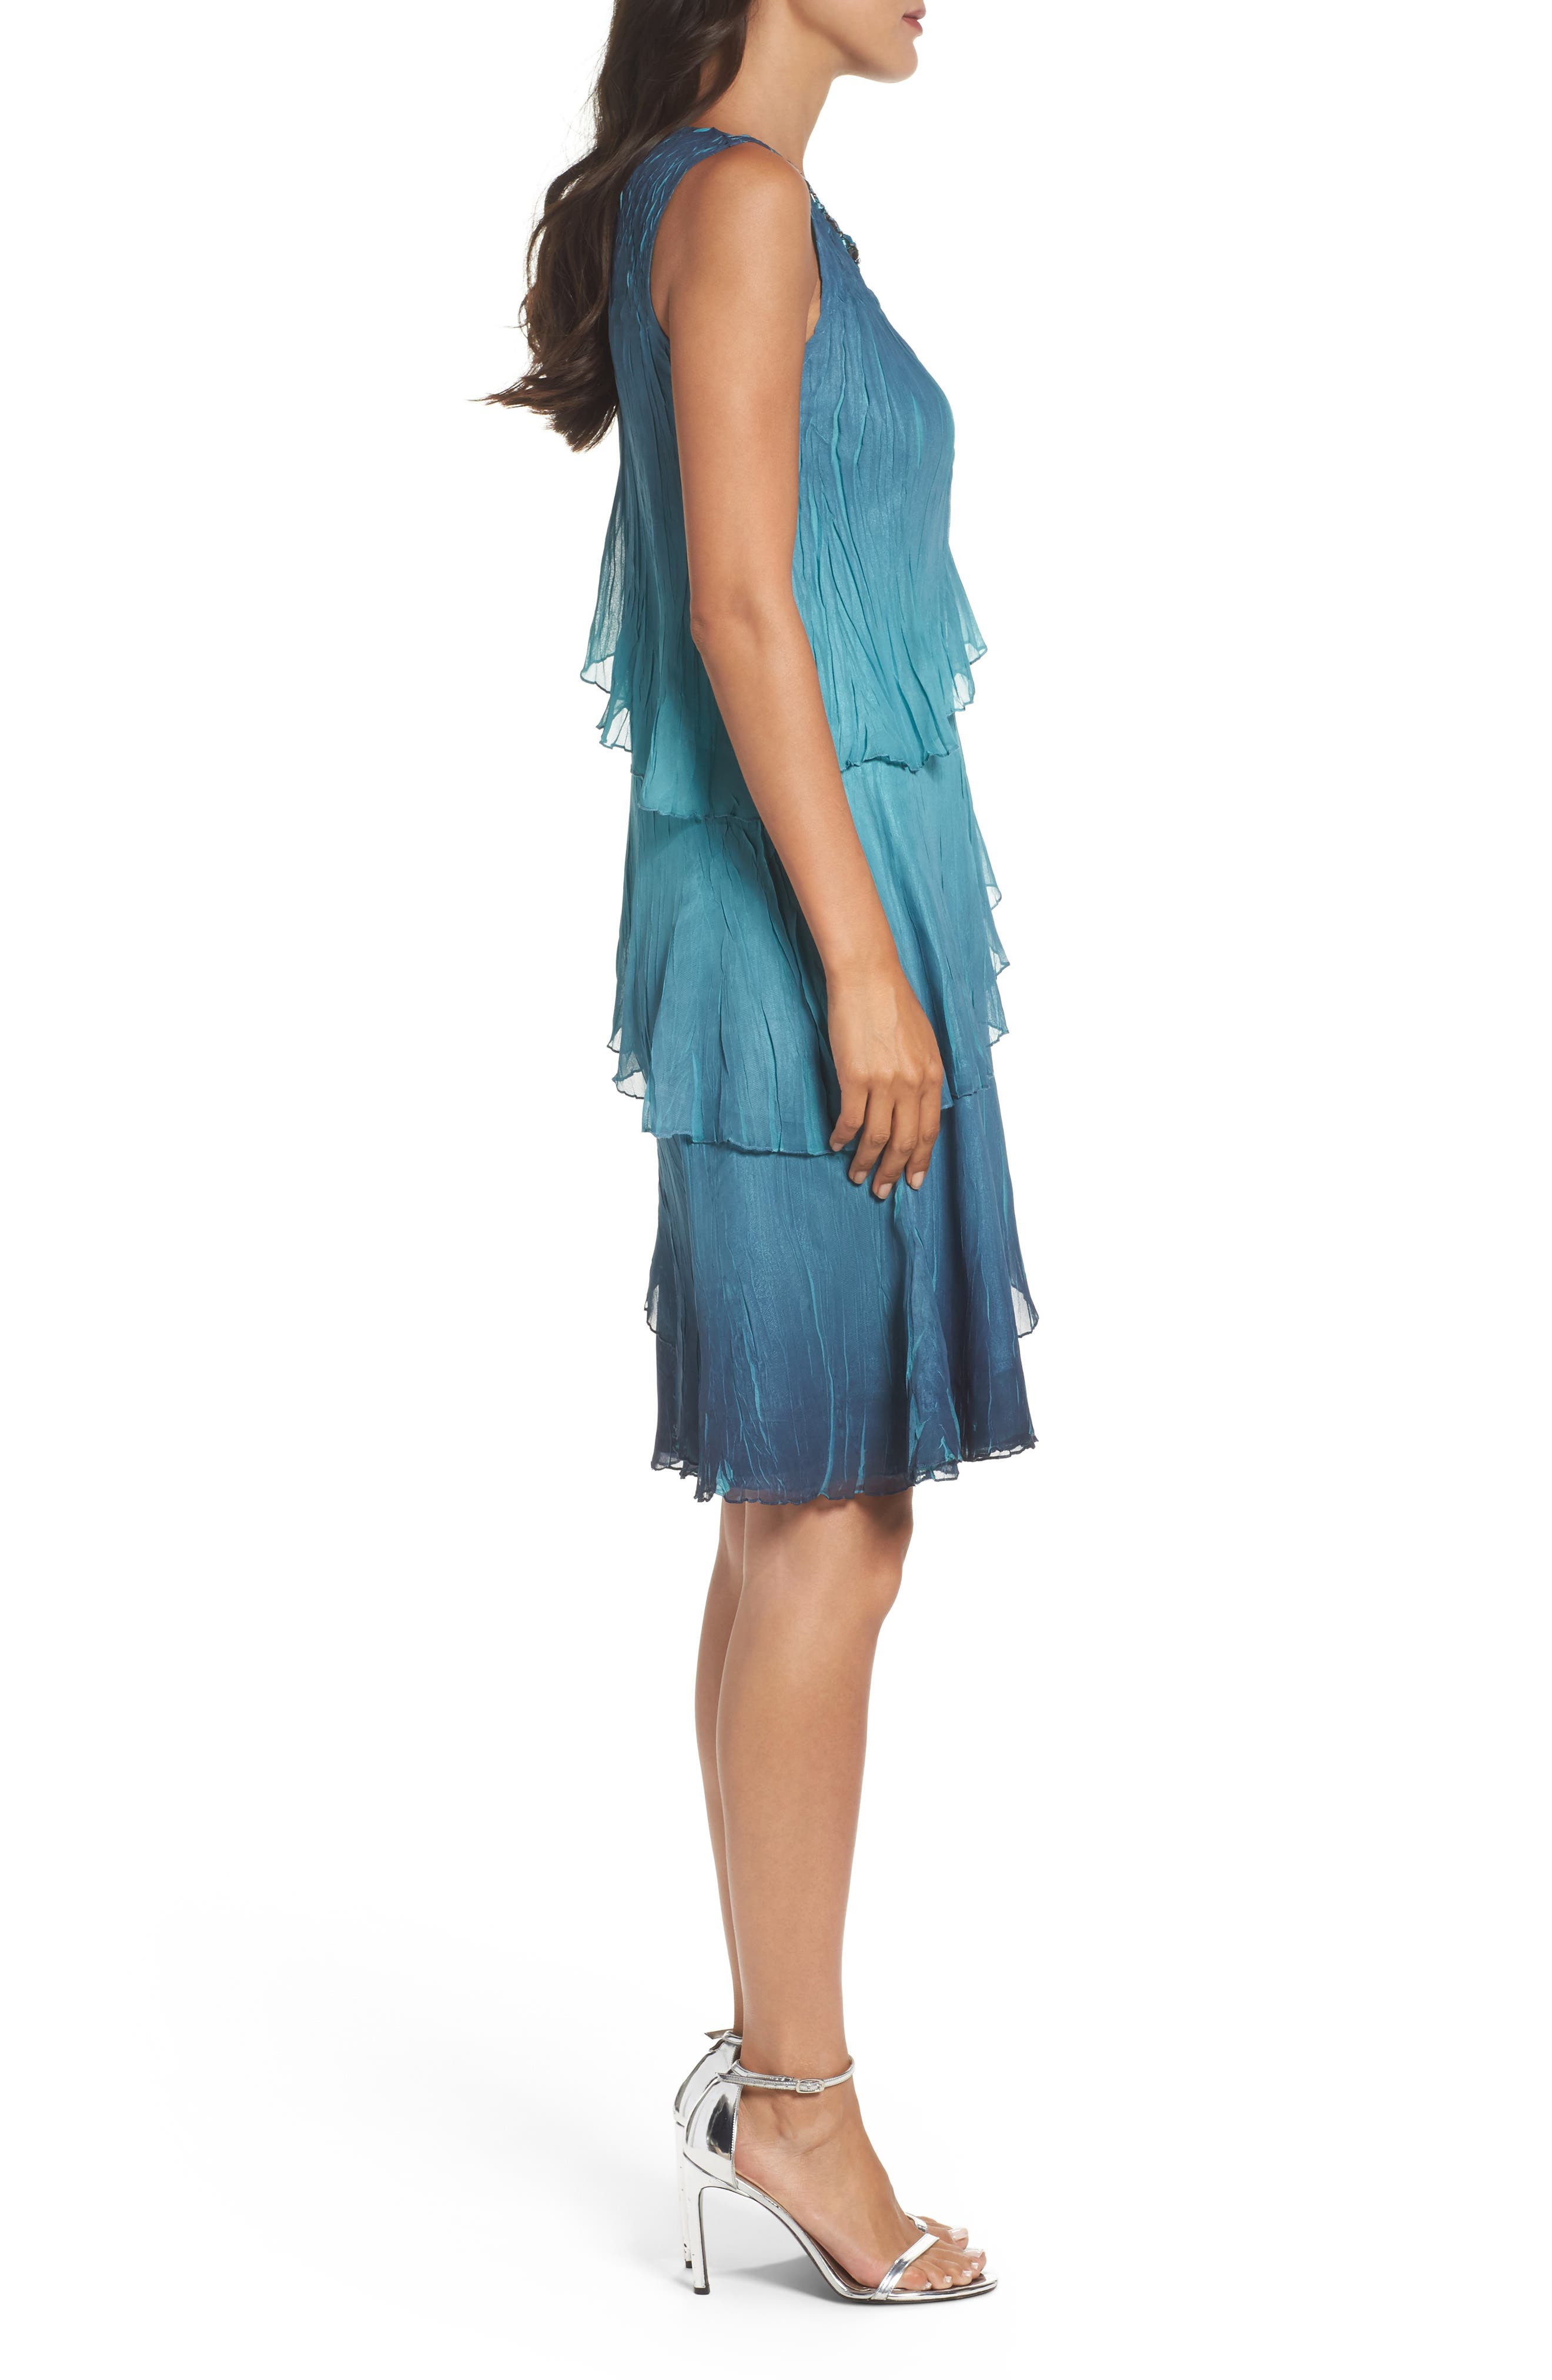 Tiered Chiffon Shift Dress with Shawl,                             Alternate thumbnail 3, color,                             Marine Night Ombre